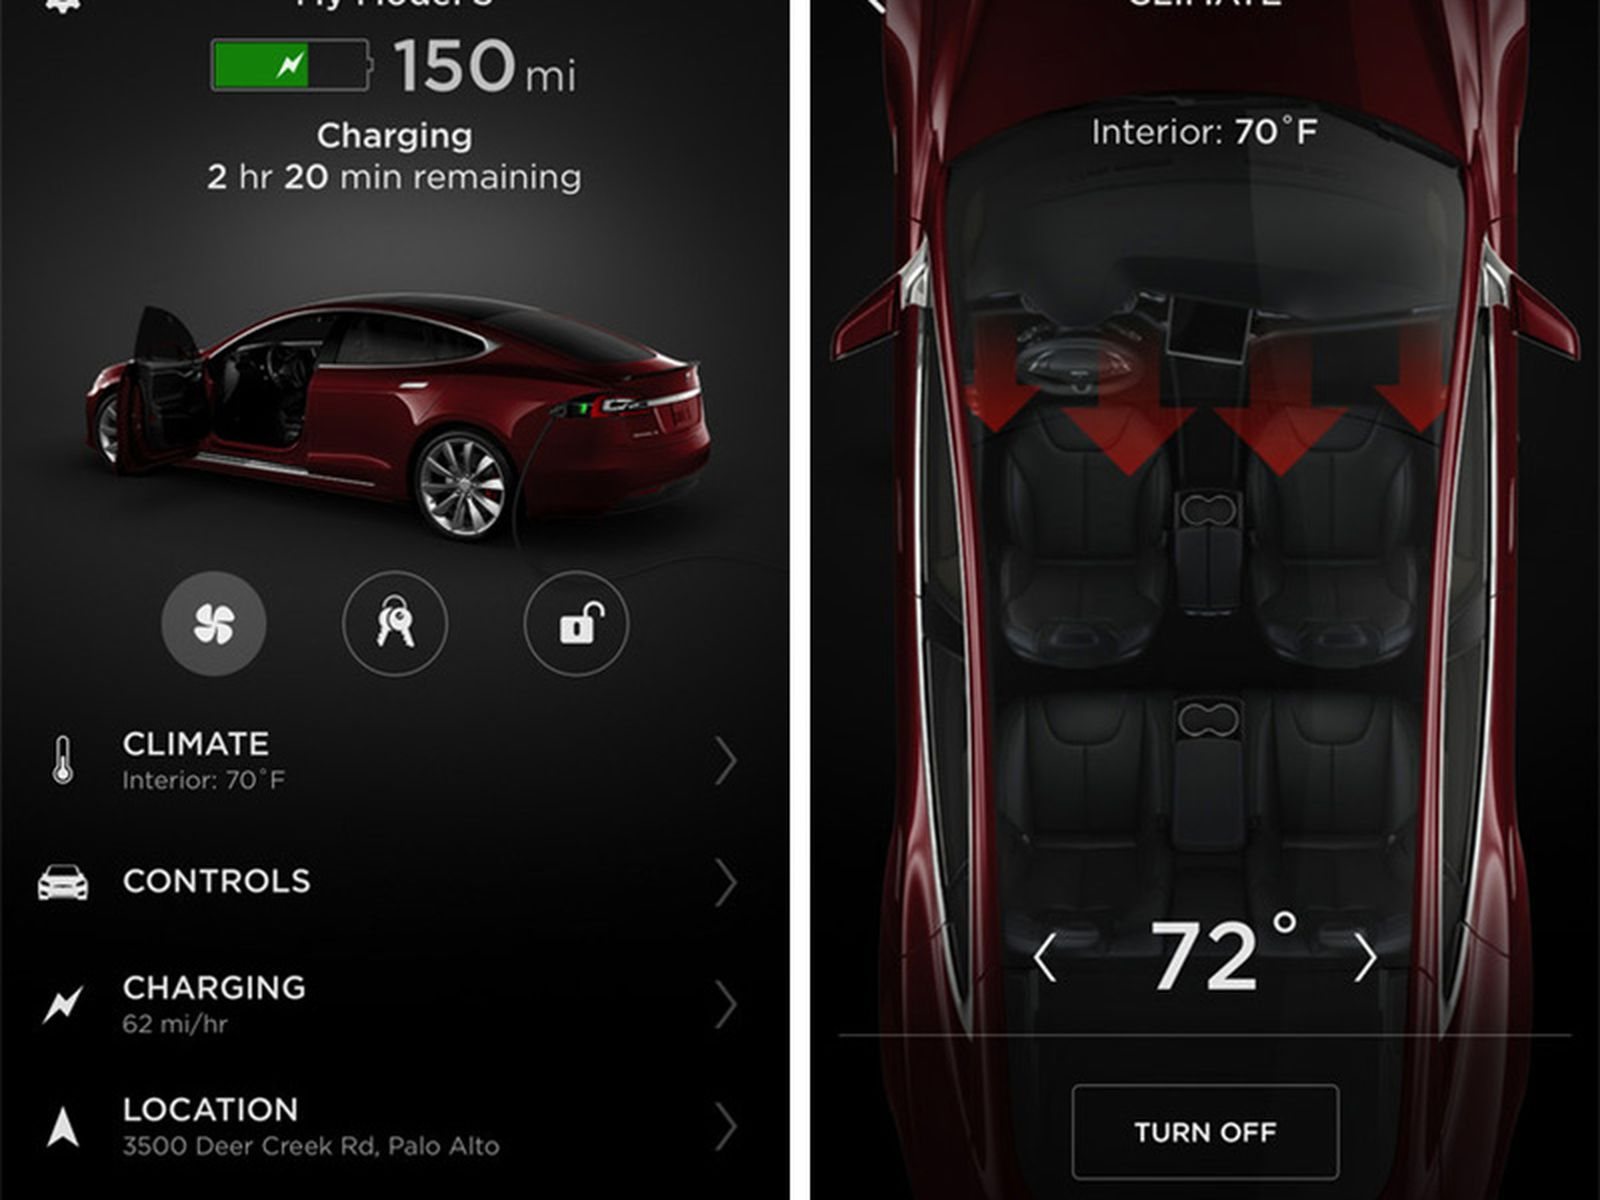 Tesla Releases Completely Redesigned Iphone App With Touch Id Support Macrumors